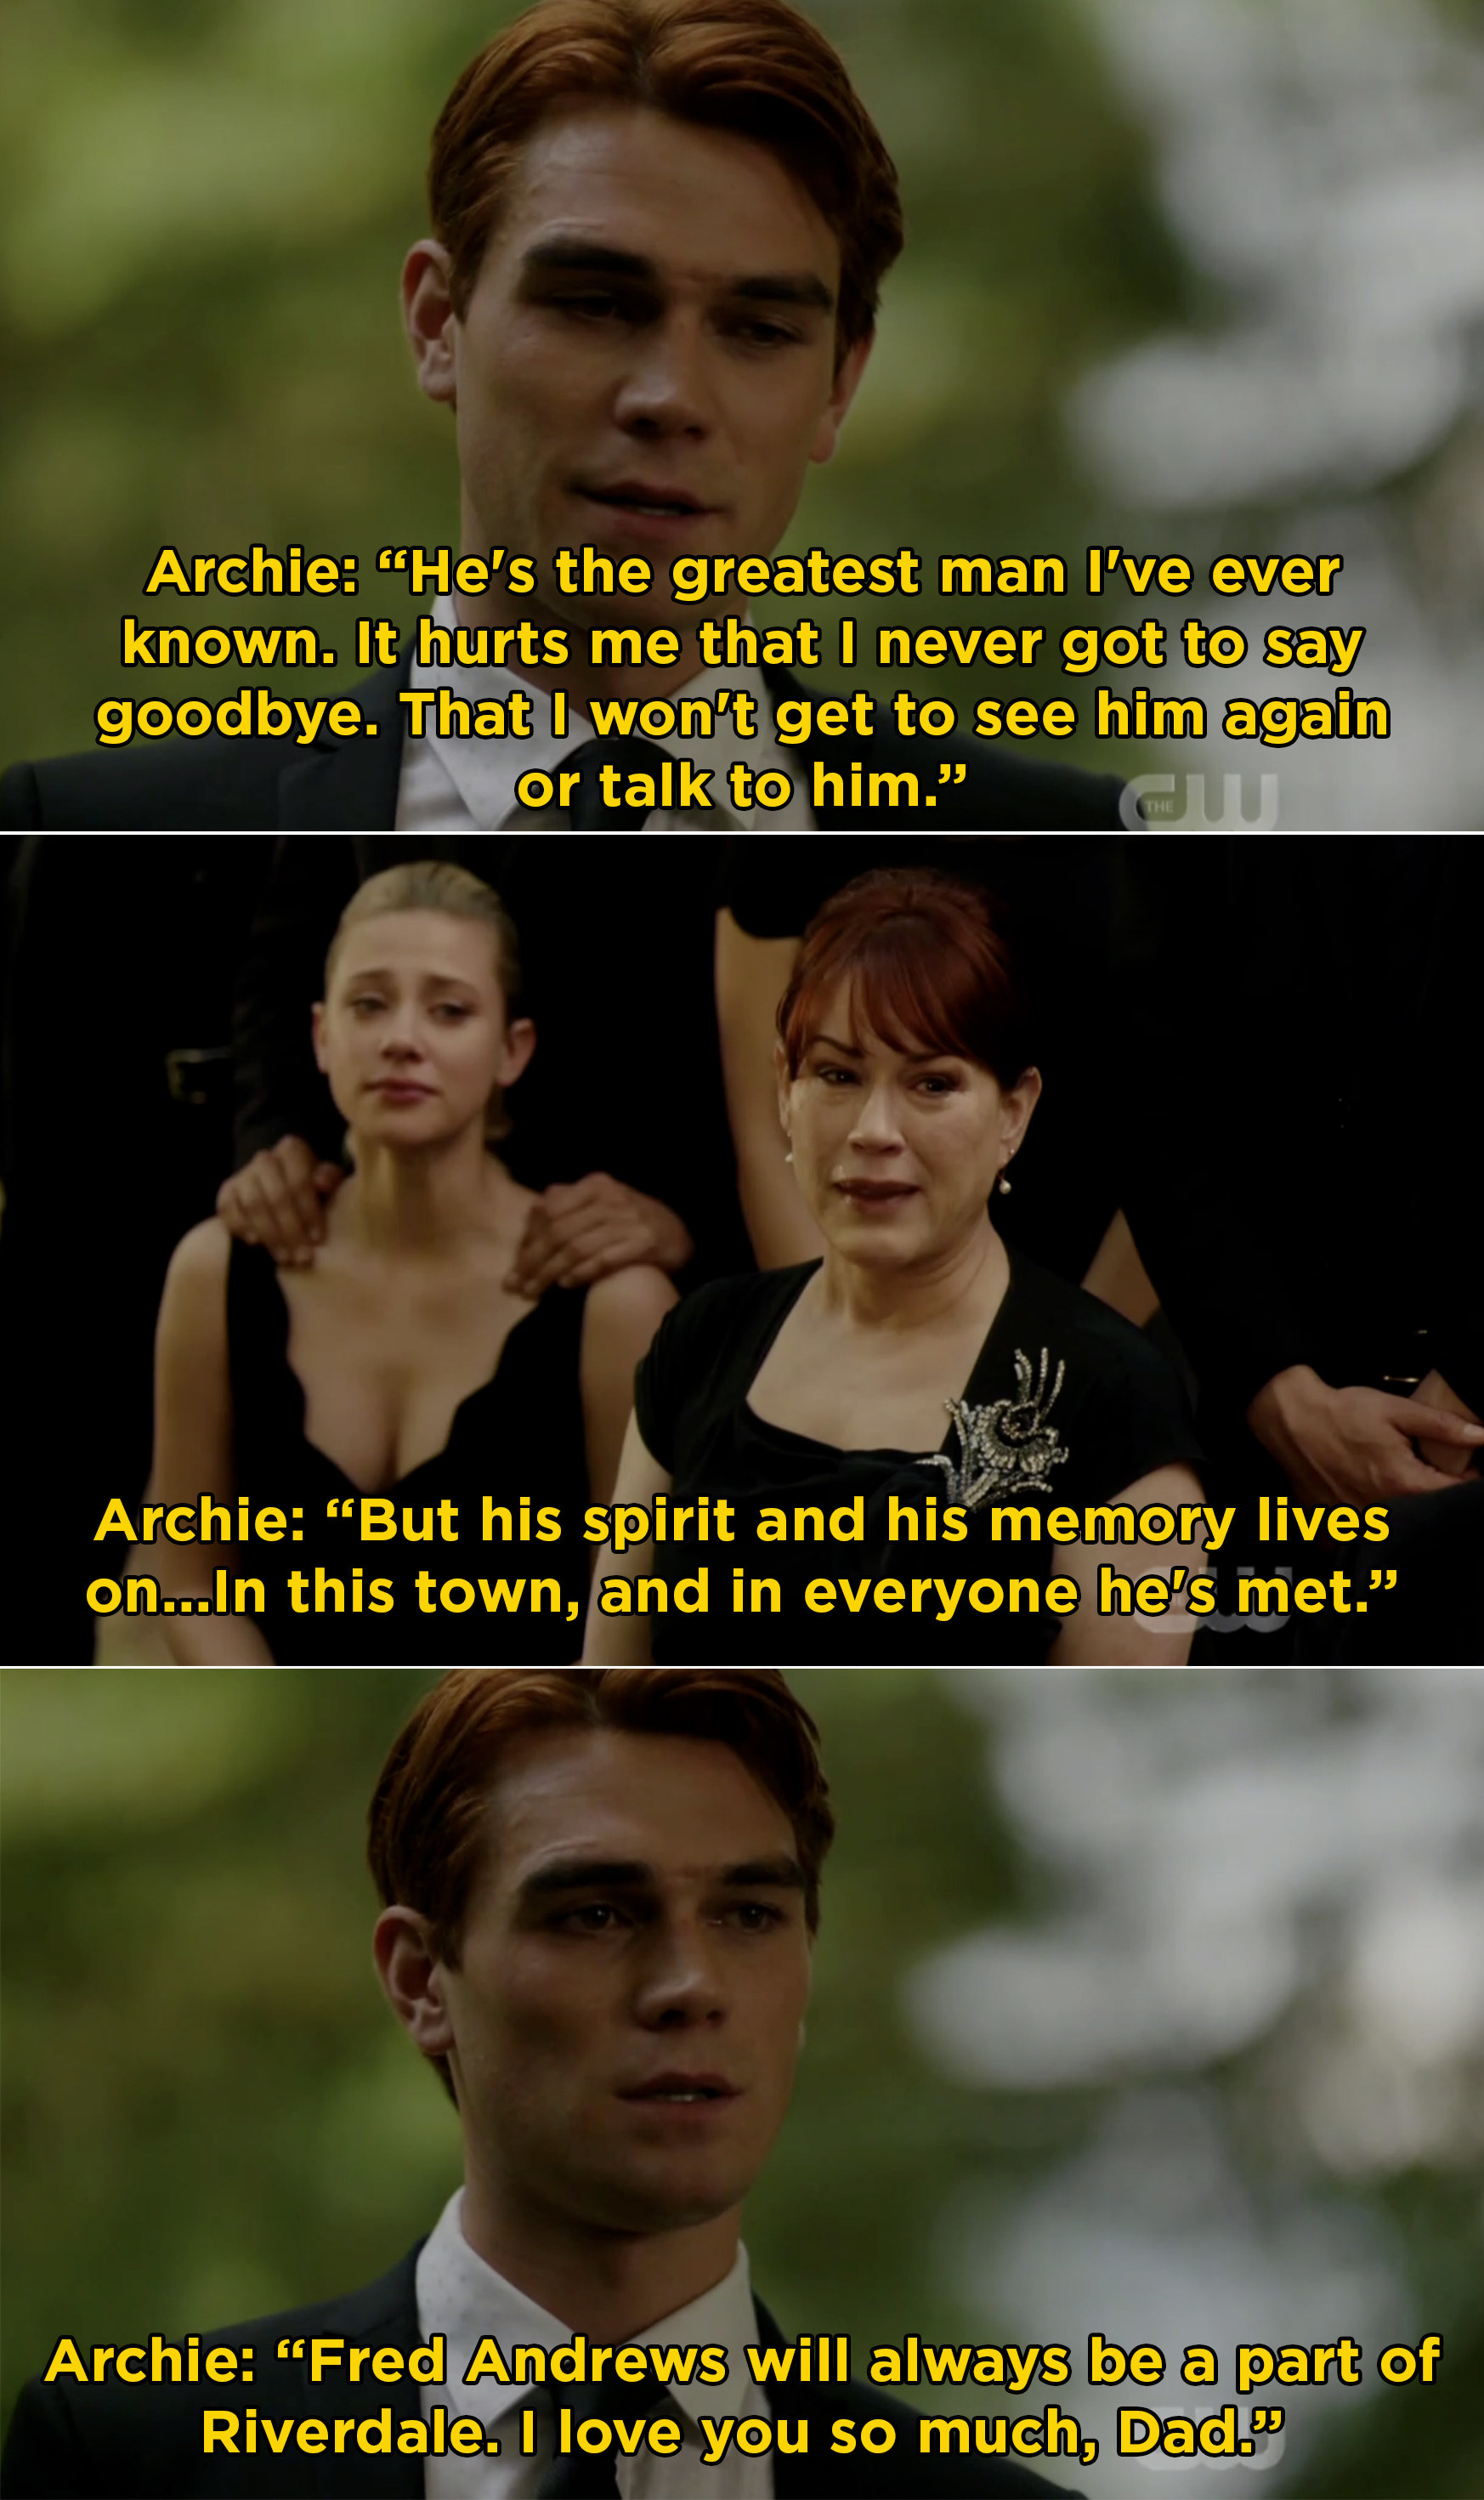 Archie giving Fred's eulogy and saying that he'll always be part of Riverdale